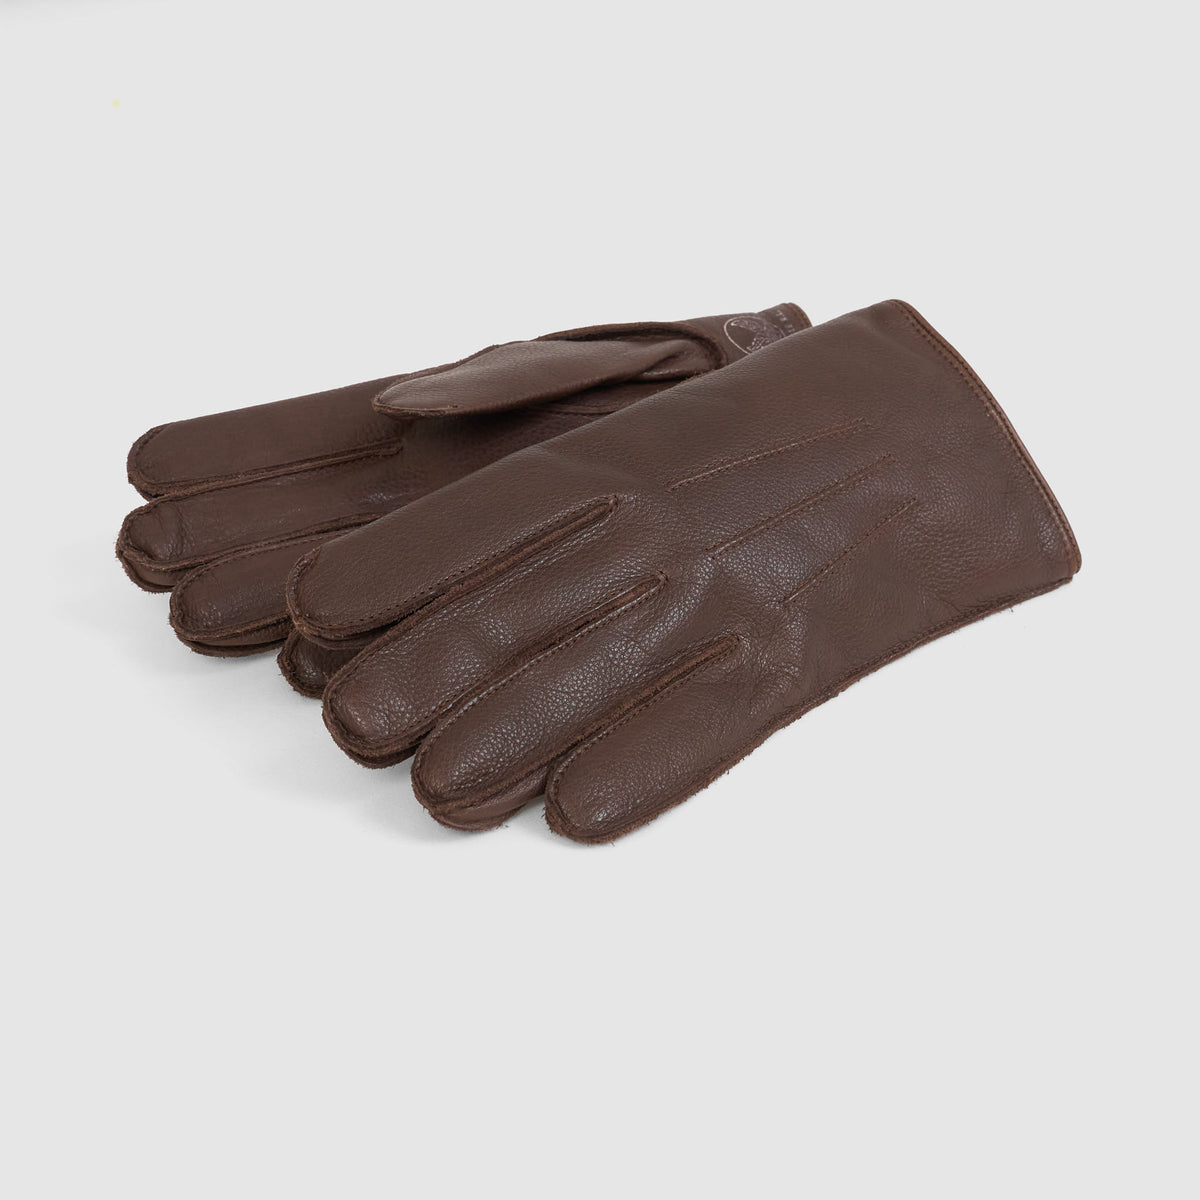 Double RL Officers Glove